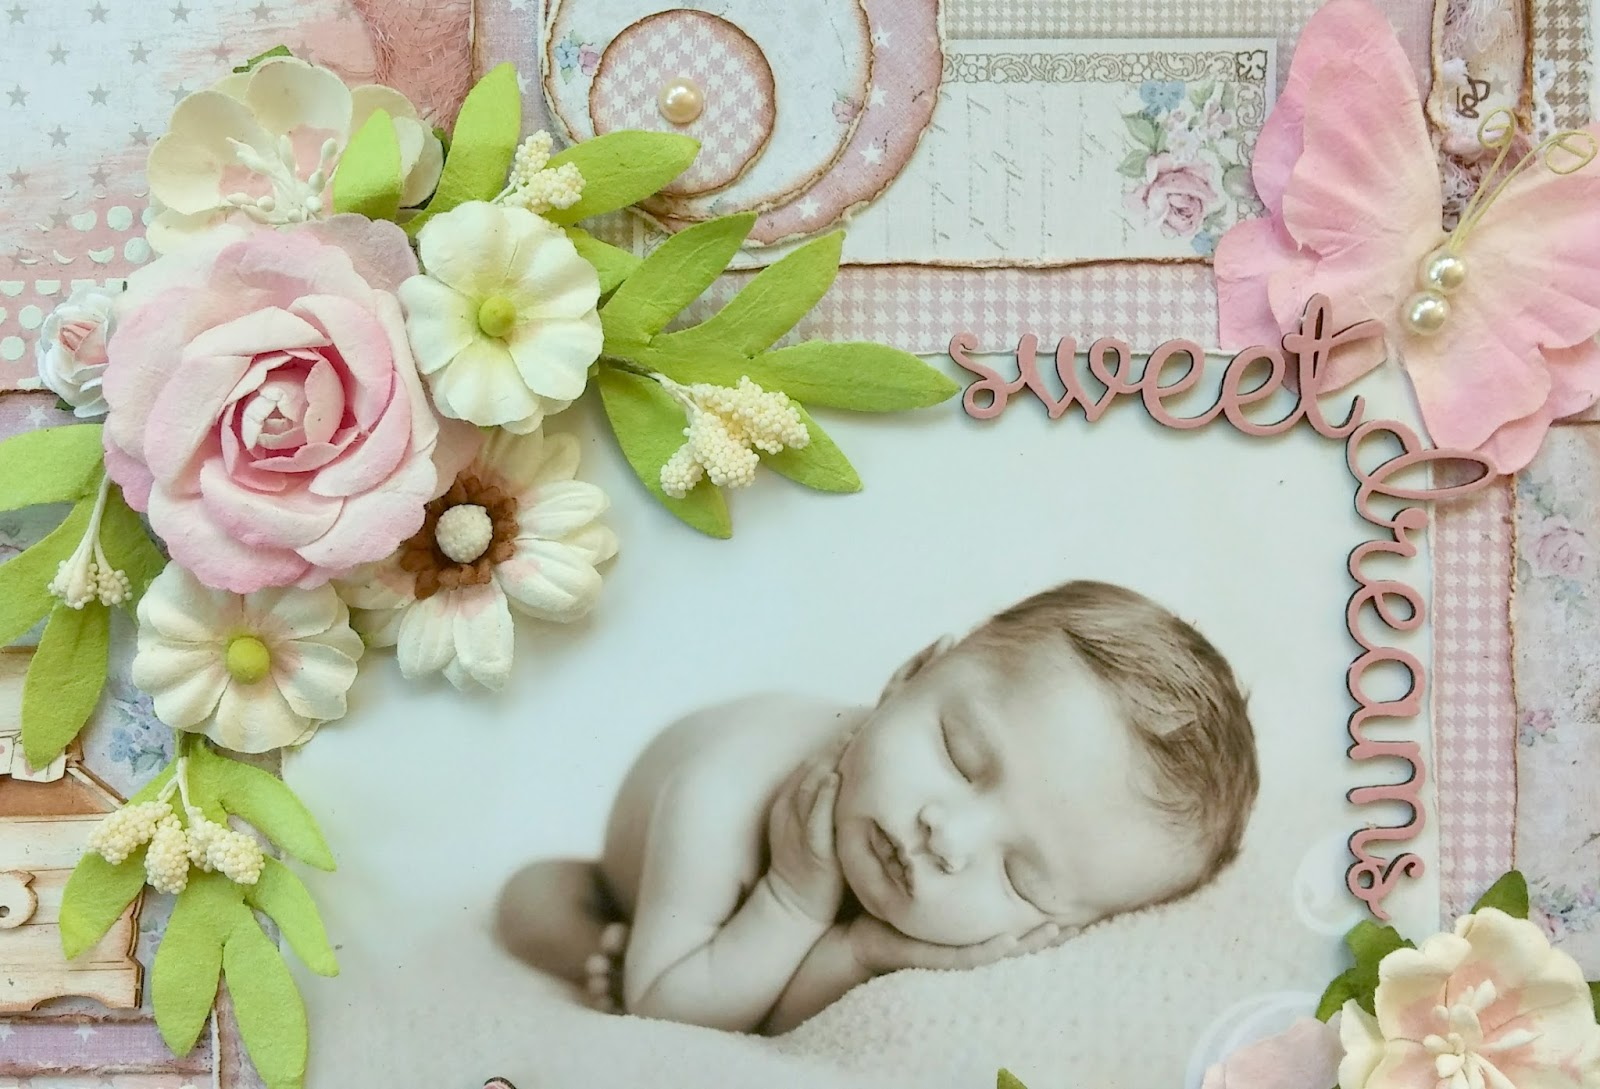 Baby girl scrapbook ideas -  Look Into Your Baby Scrapbook Pages And At The Same Time One Of My Other Design Teams Dusty Attic Came Out With The Cutest Chippies For Baby Layouts